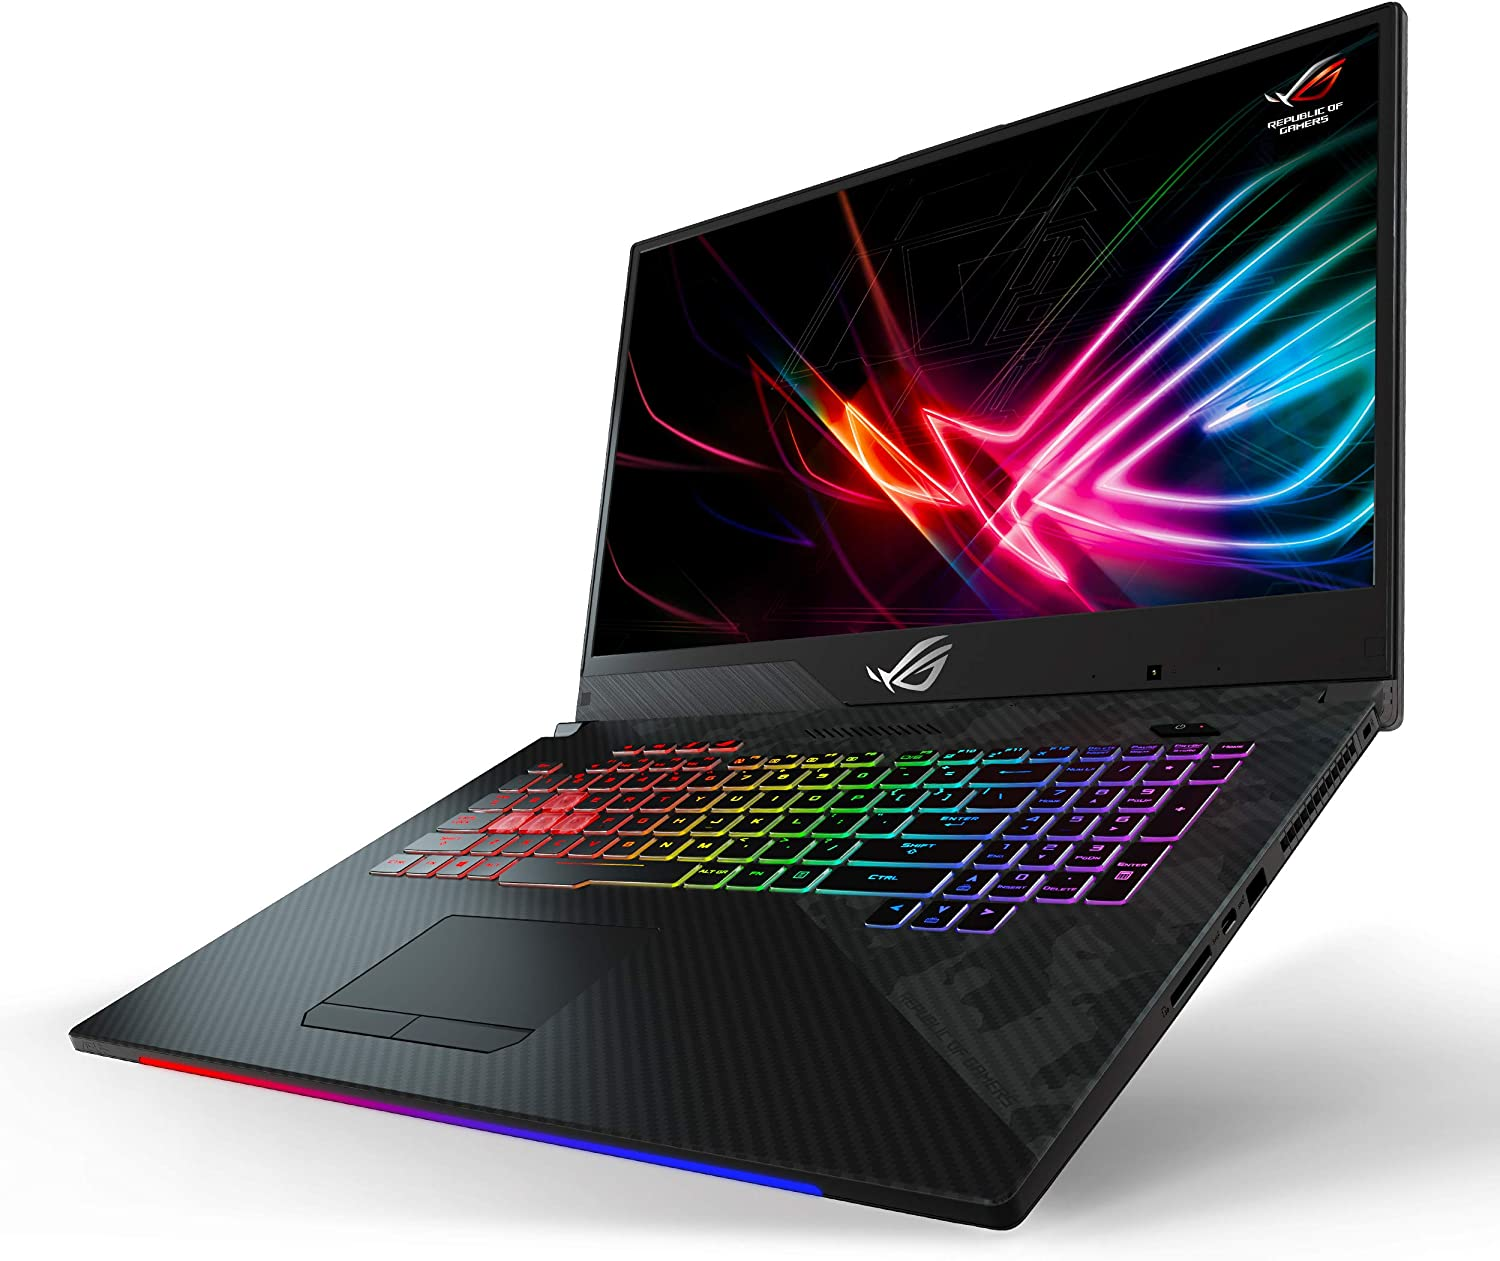 Amazon.com: ASUS ROG Strix Hero II Gaming Laptop, 17.3 ...